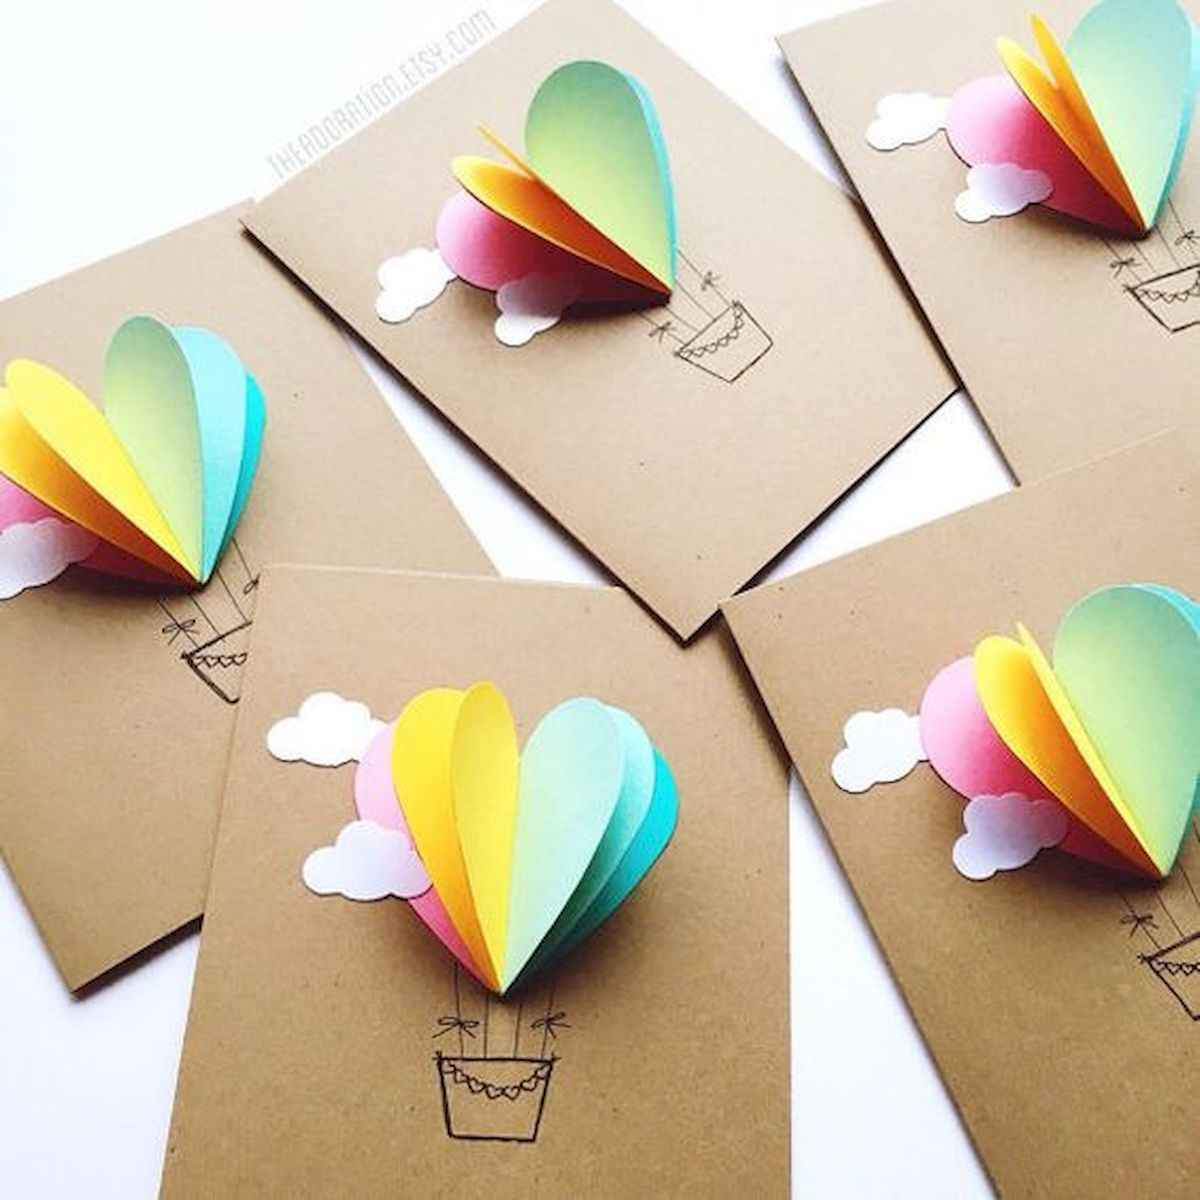 50 inspiring easy craft ideas for kids you must try (5)